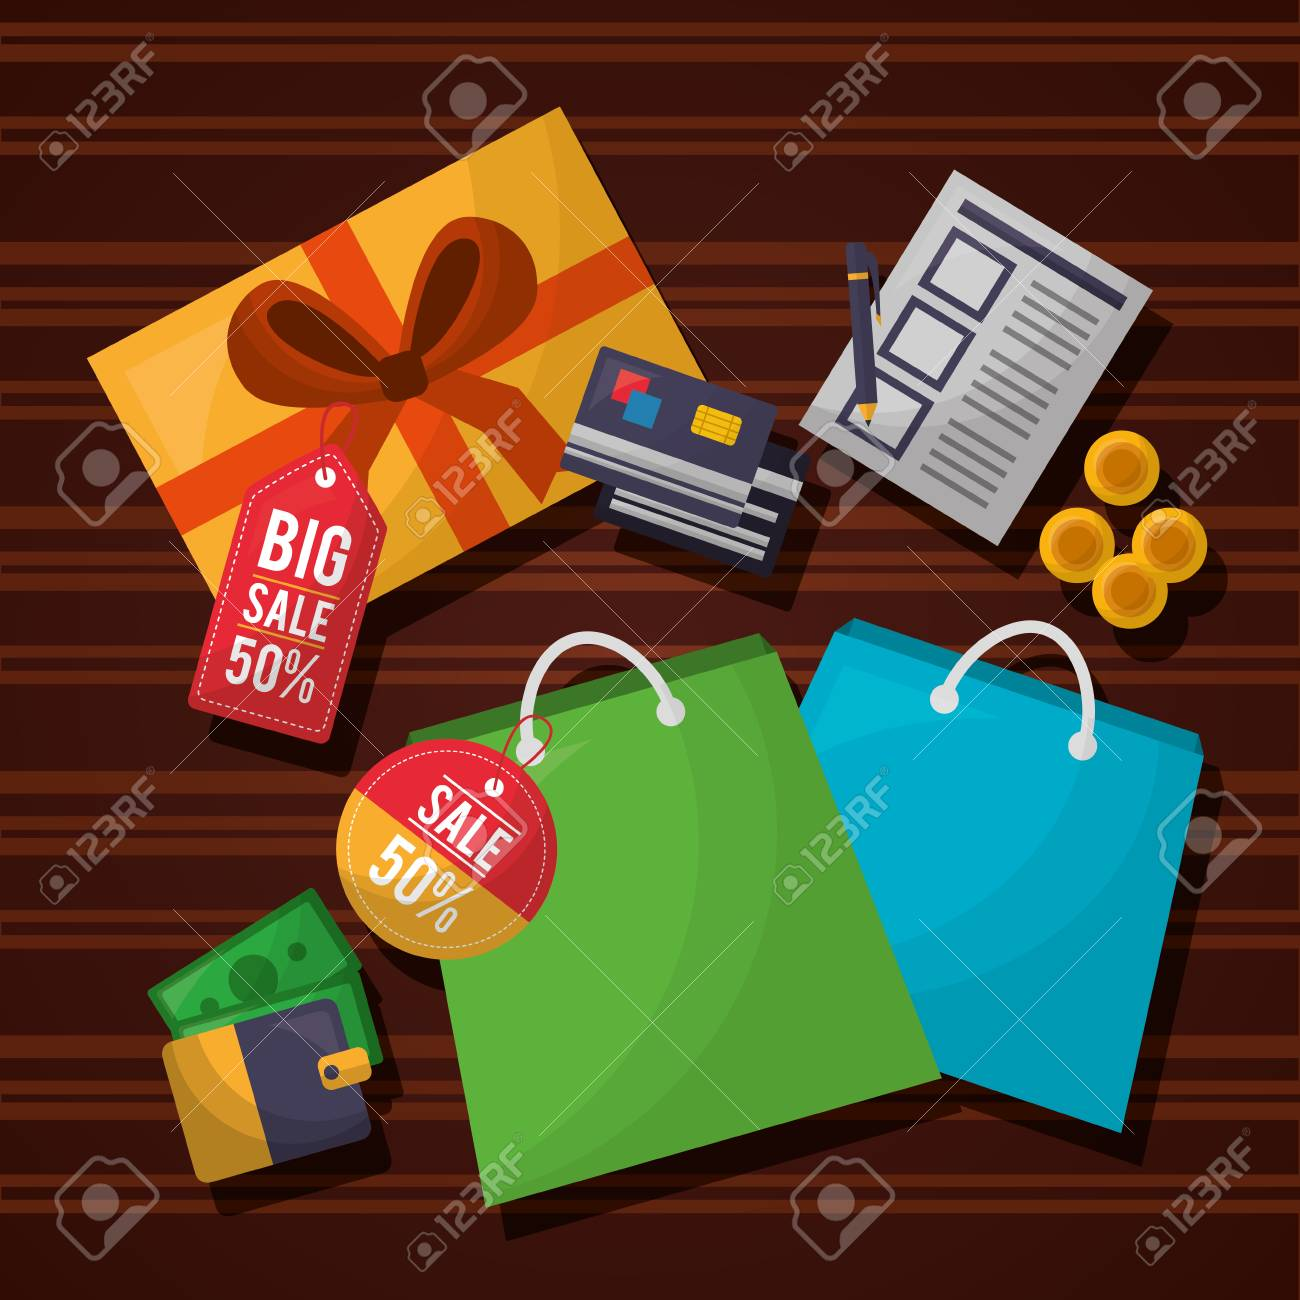 online shopping list coins shop bags colors wallet credit cards vector  illustration Stock Vector - 112259065 62f9236257133